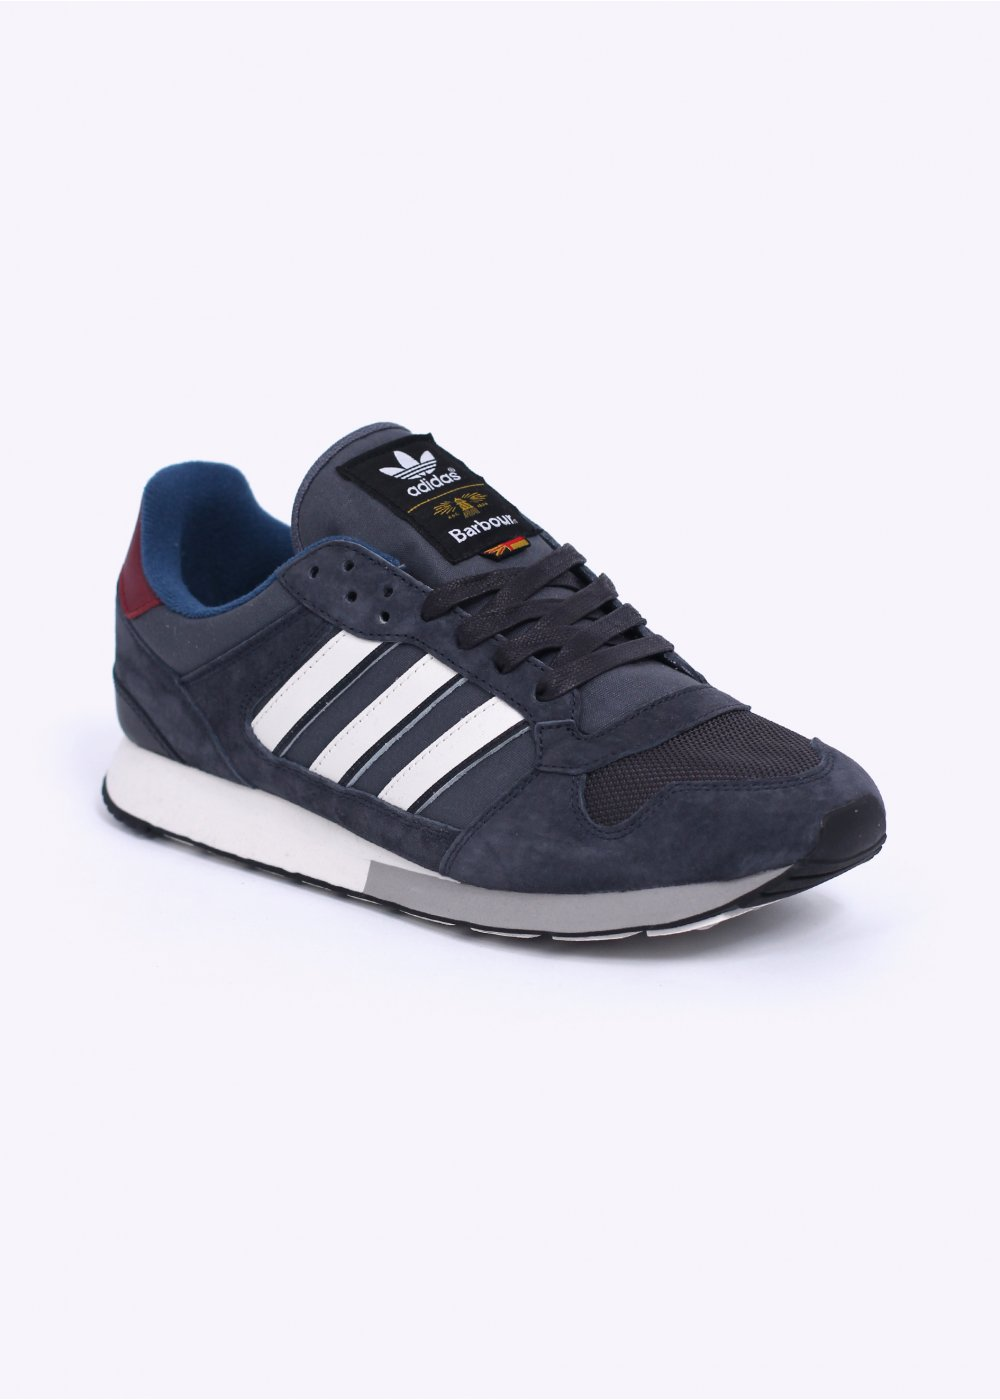 Adidas Originals Apparel Adidas Originals Footwear Alife Asics Barbour - Zx 555 trainers solid grey white vapour